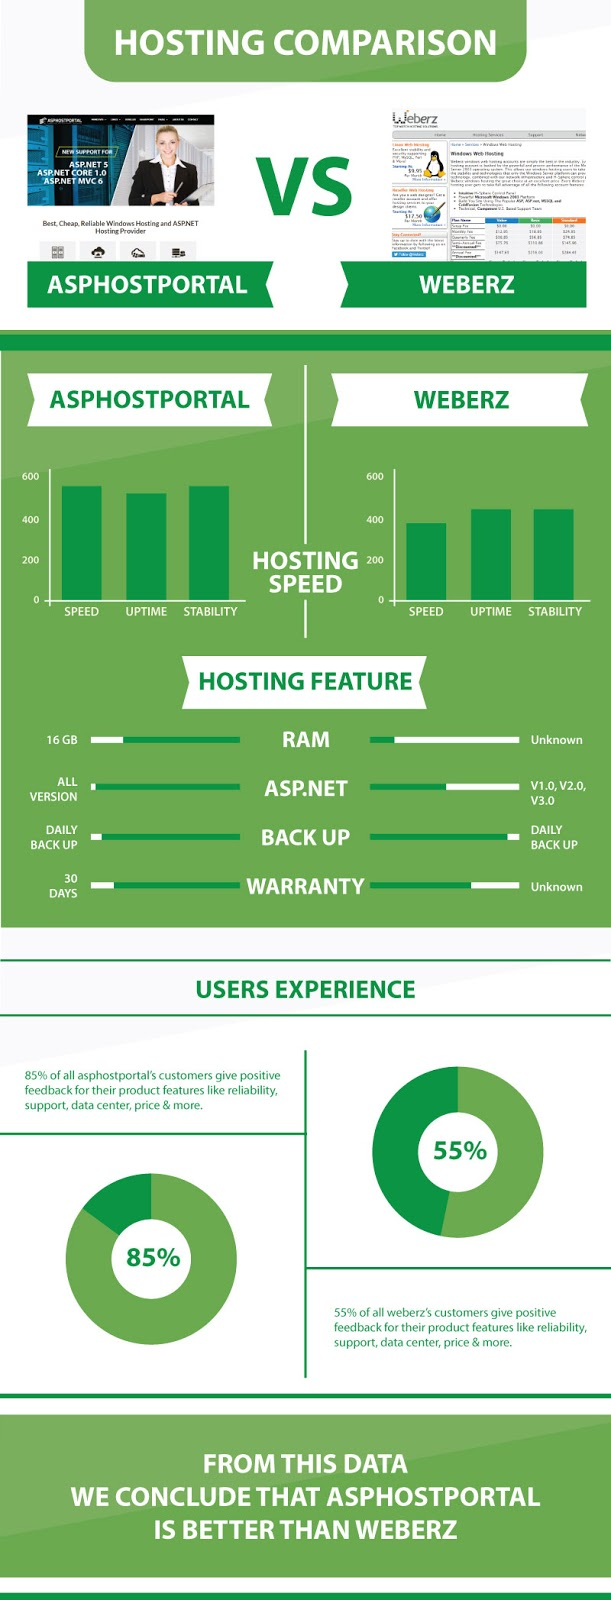 ASP.NET Core 1.0 Hosting Comparison | ASPHostPortal Vs Weberz | Explained With Infographic